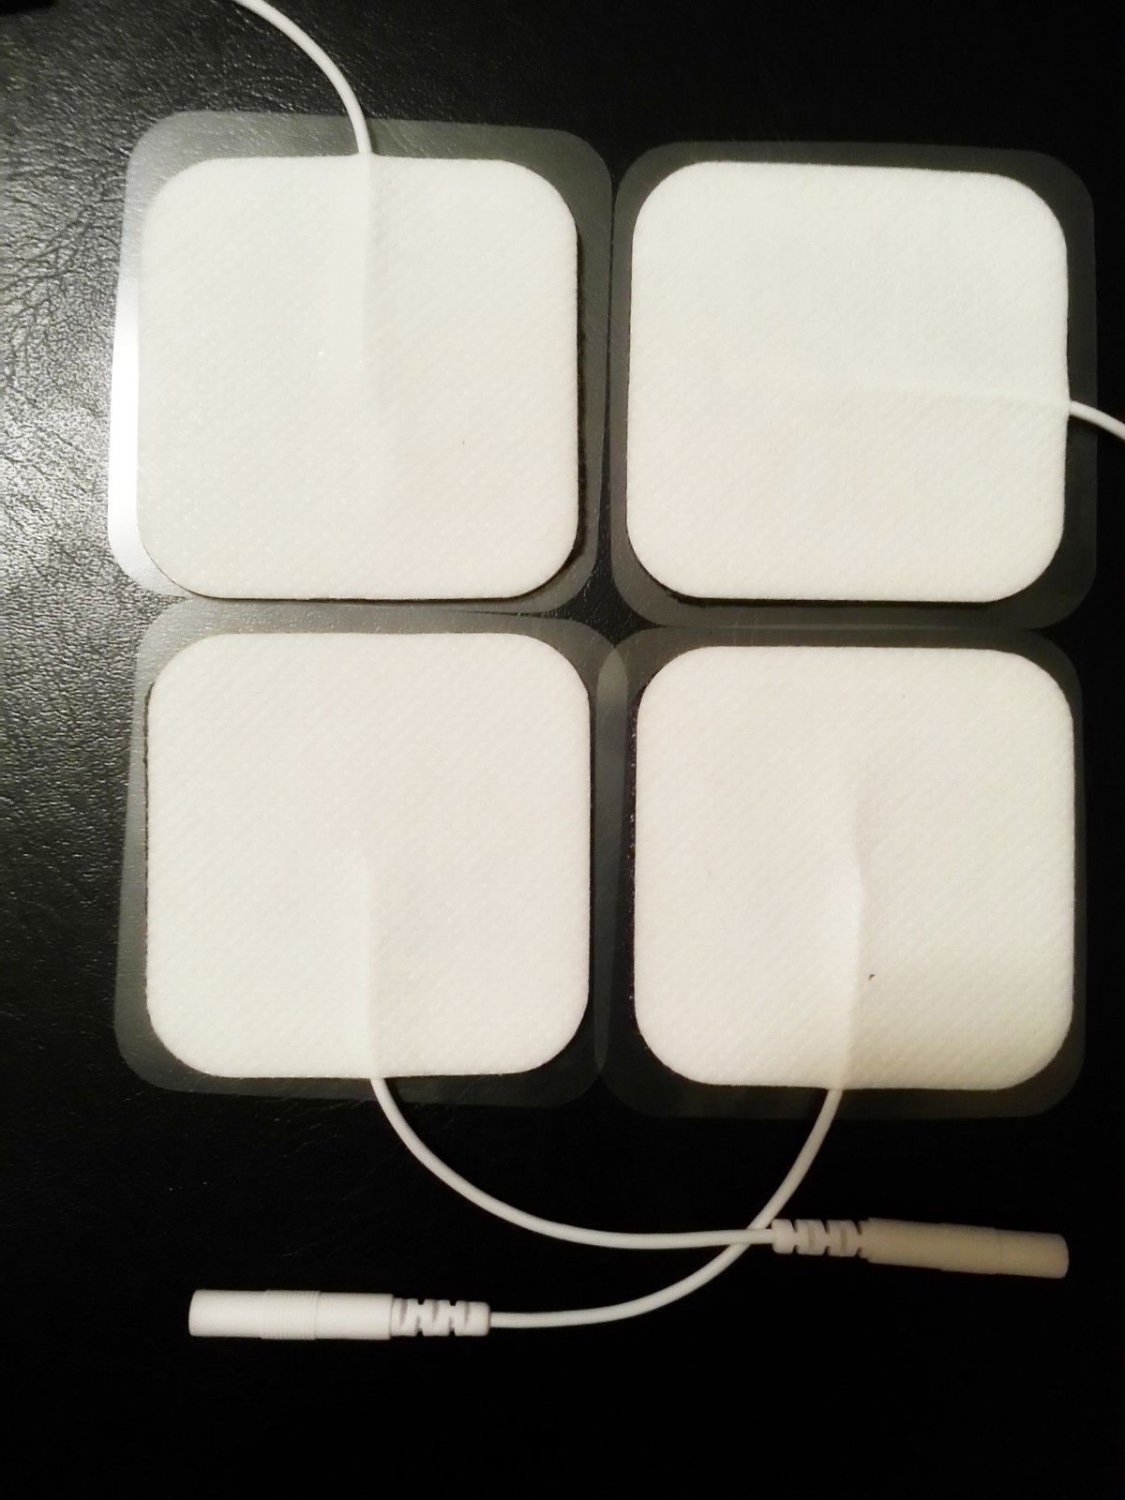 16 pc Square Replacement Electrode Massage Pads for Prosepra PL009 and Leosense